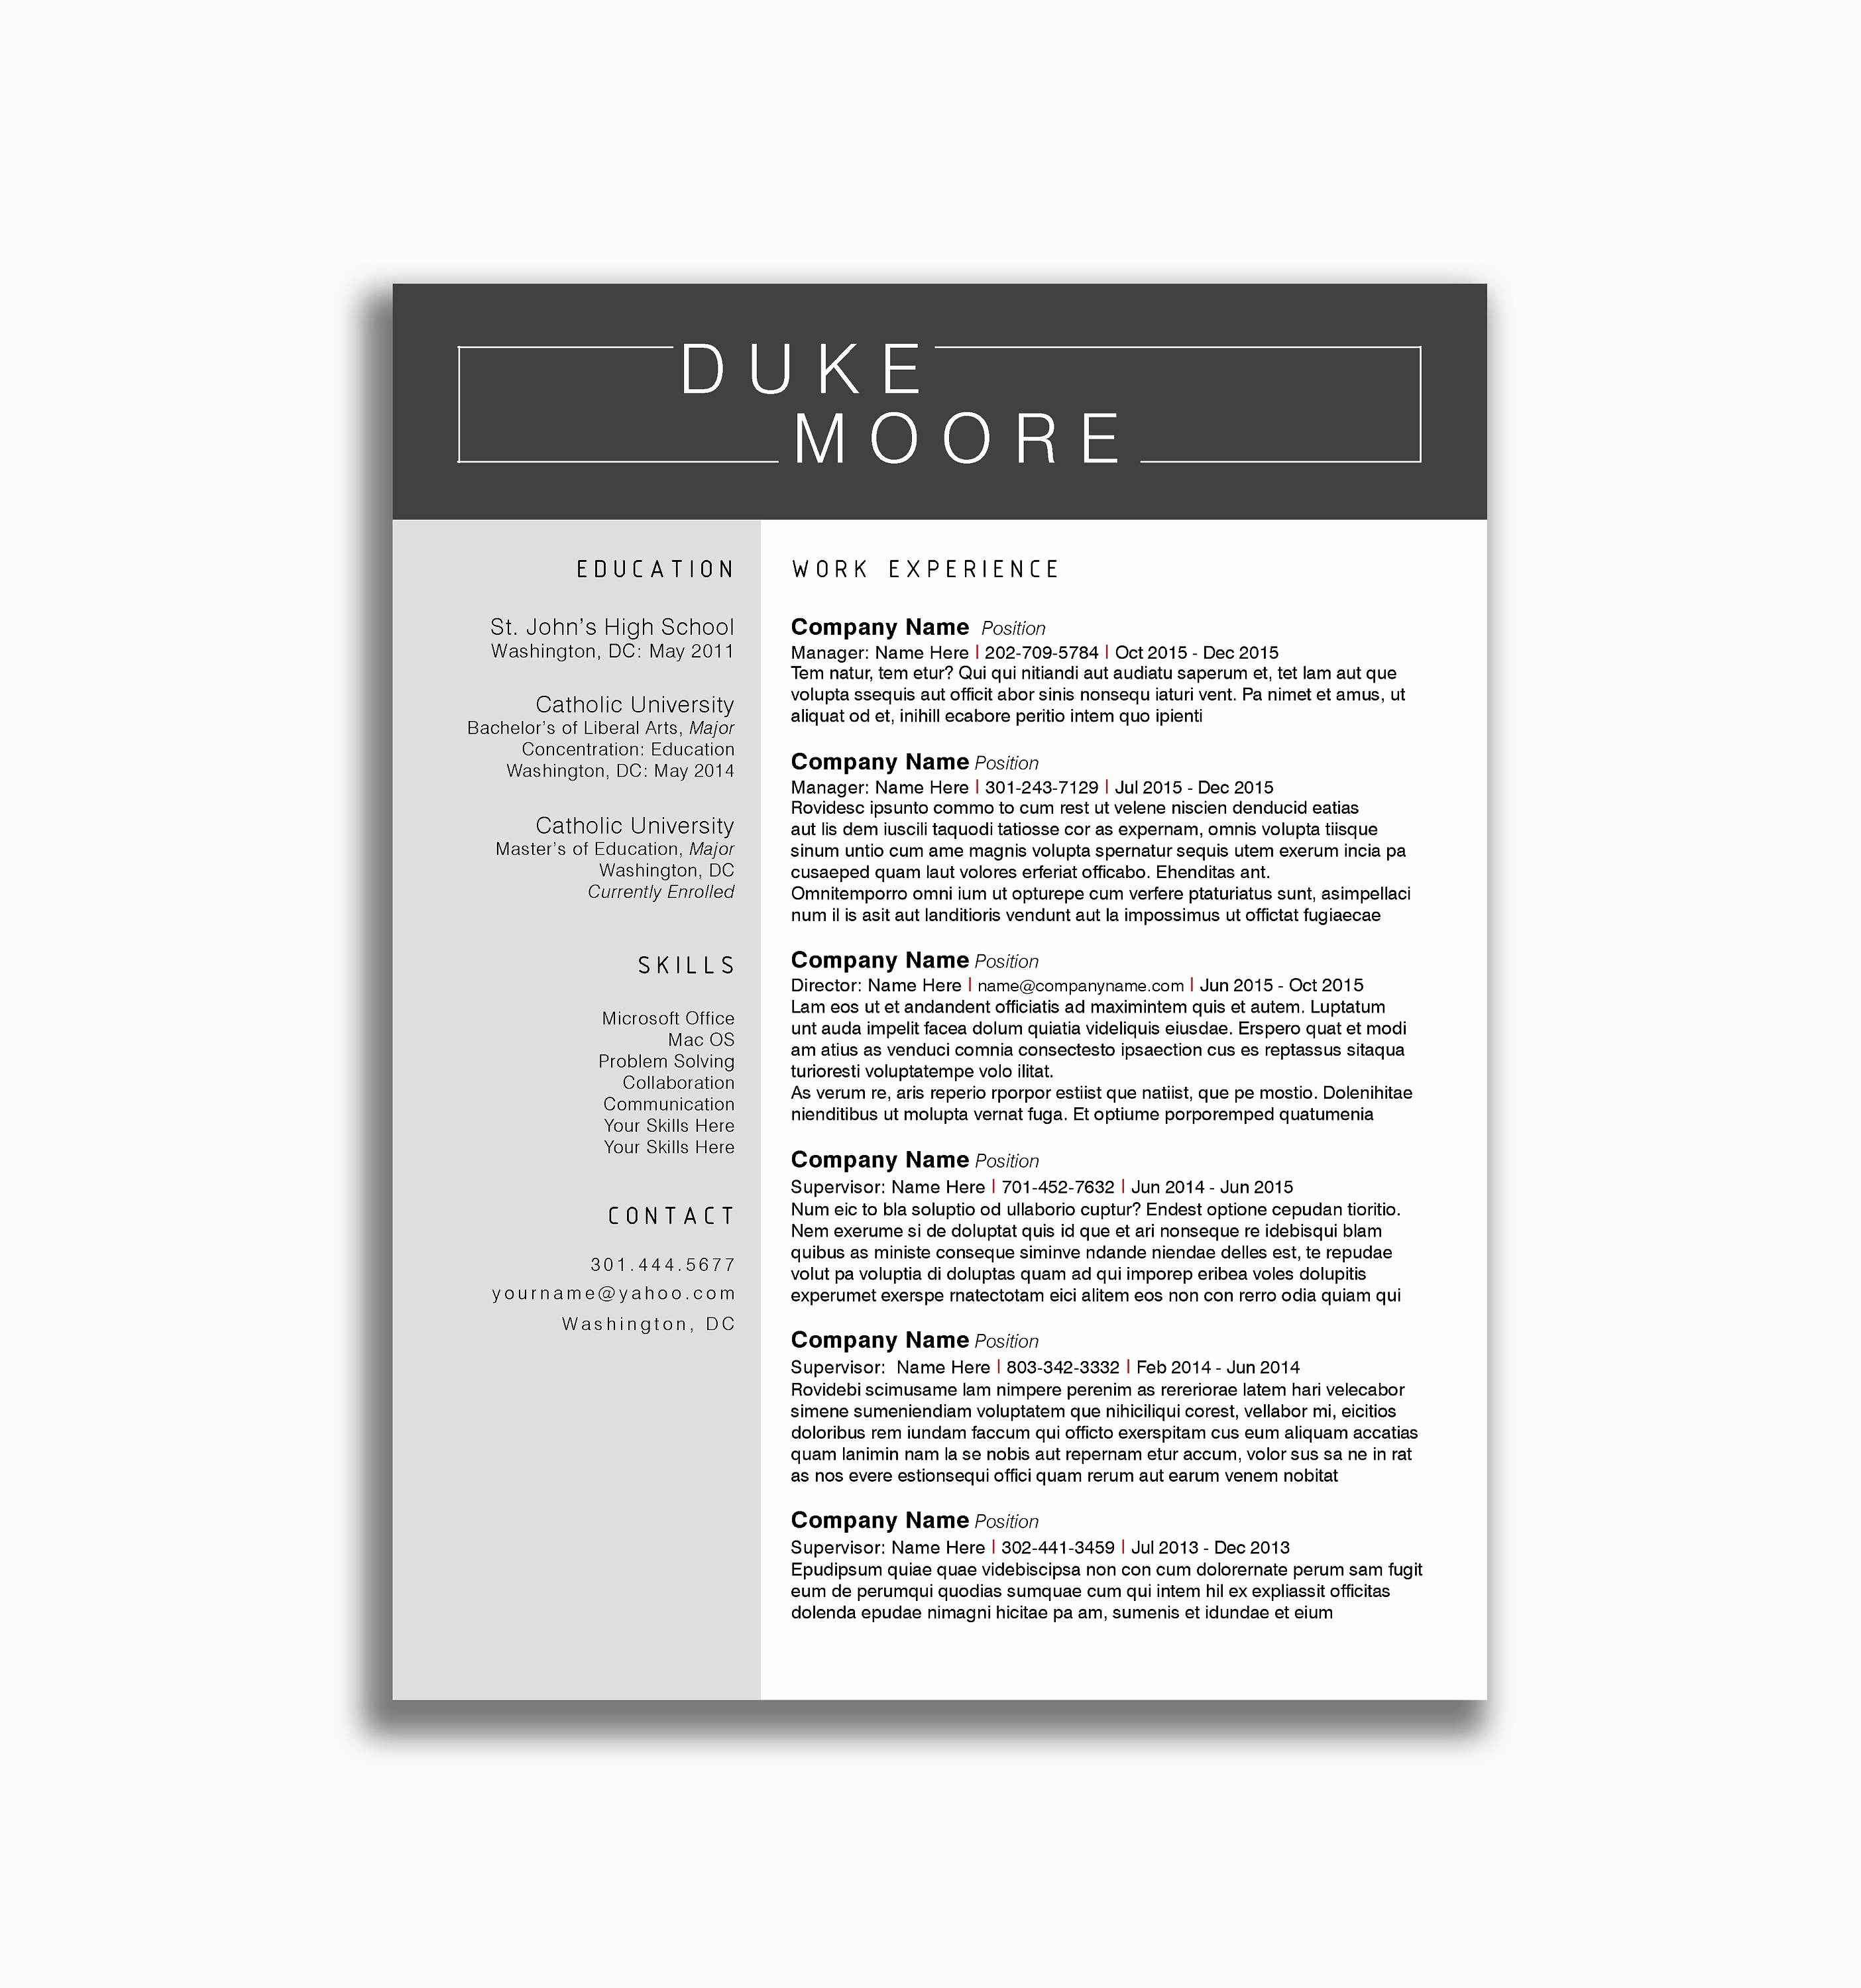 Indesign Letter Template - Free Resume Template Indesign Elegant Very Basic Resume Template